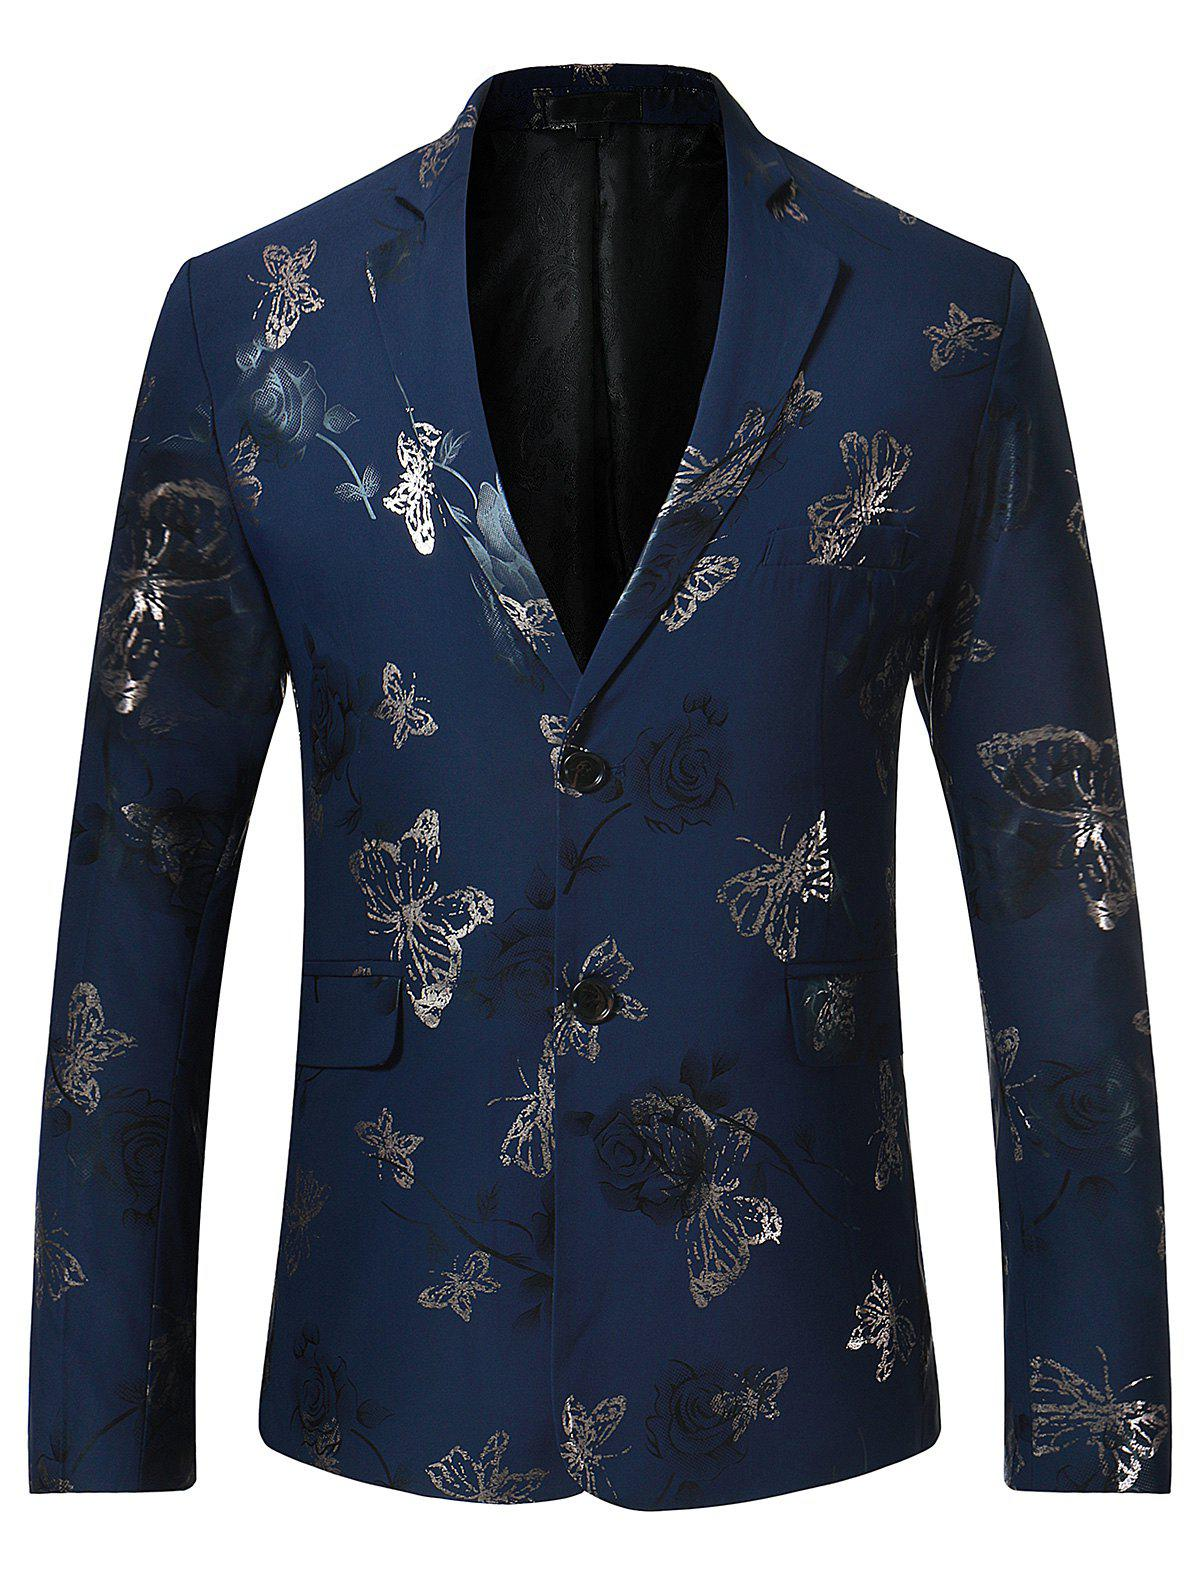 Lapel Metallic Butterfly Floral Printed Blazer - BLUE S